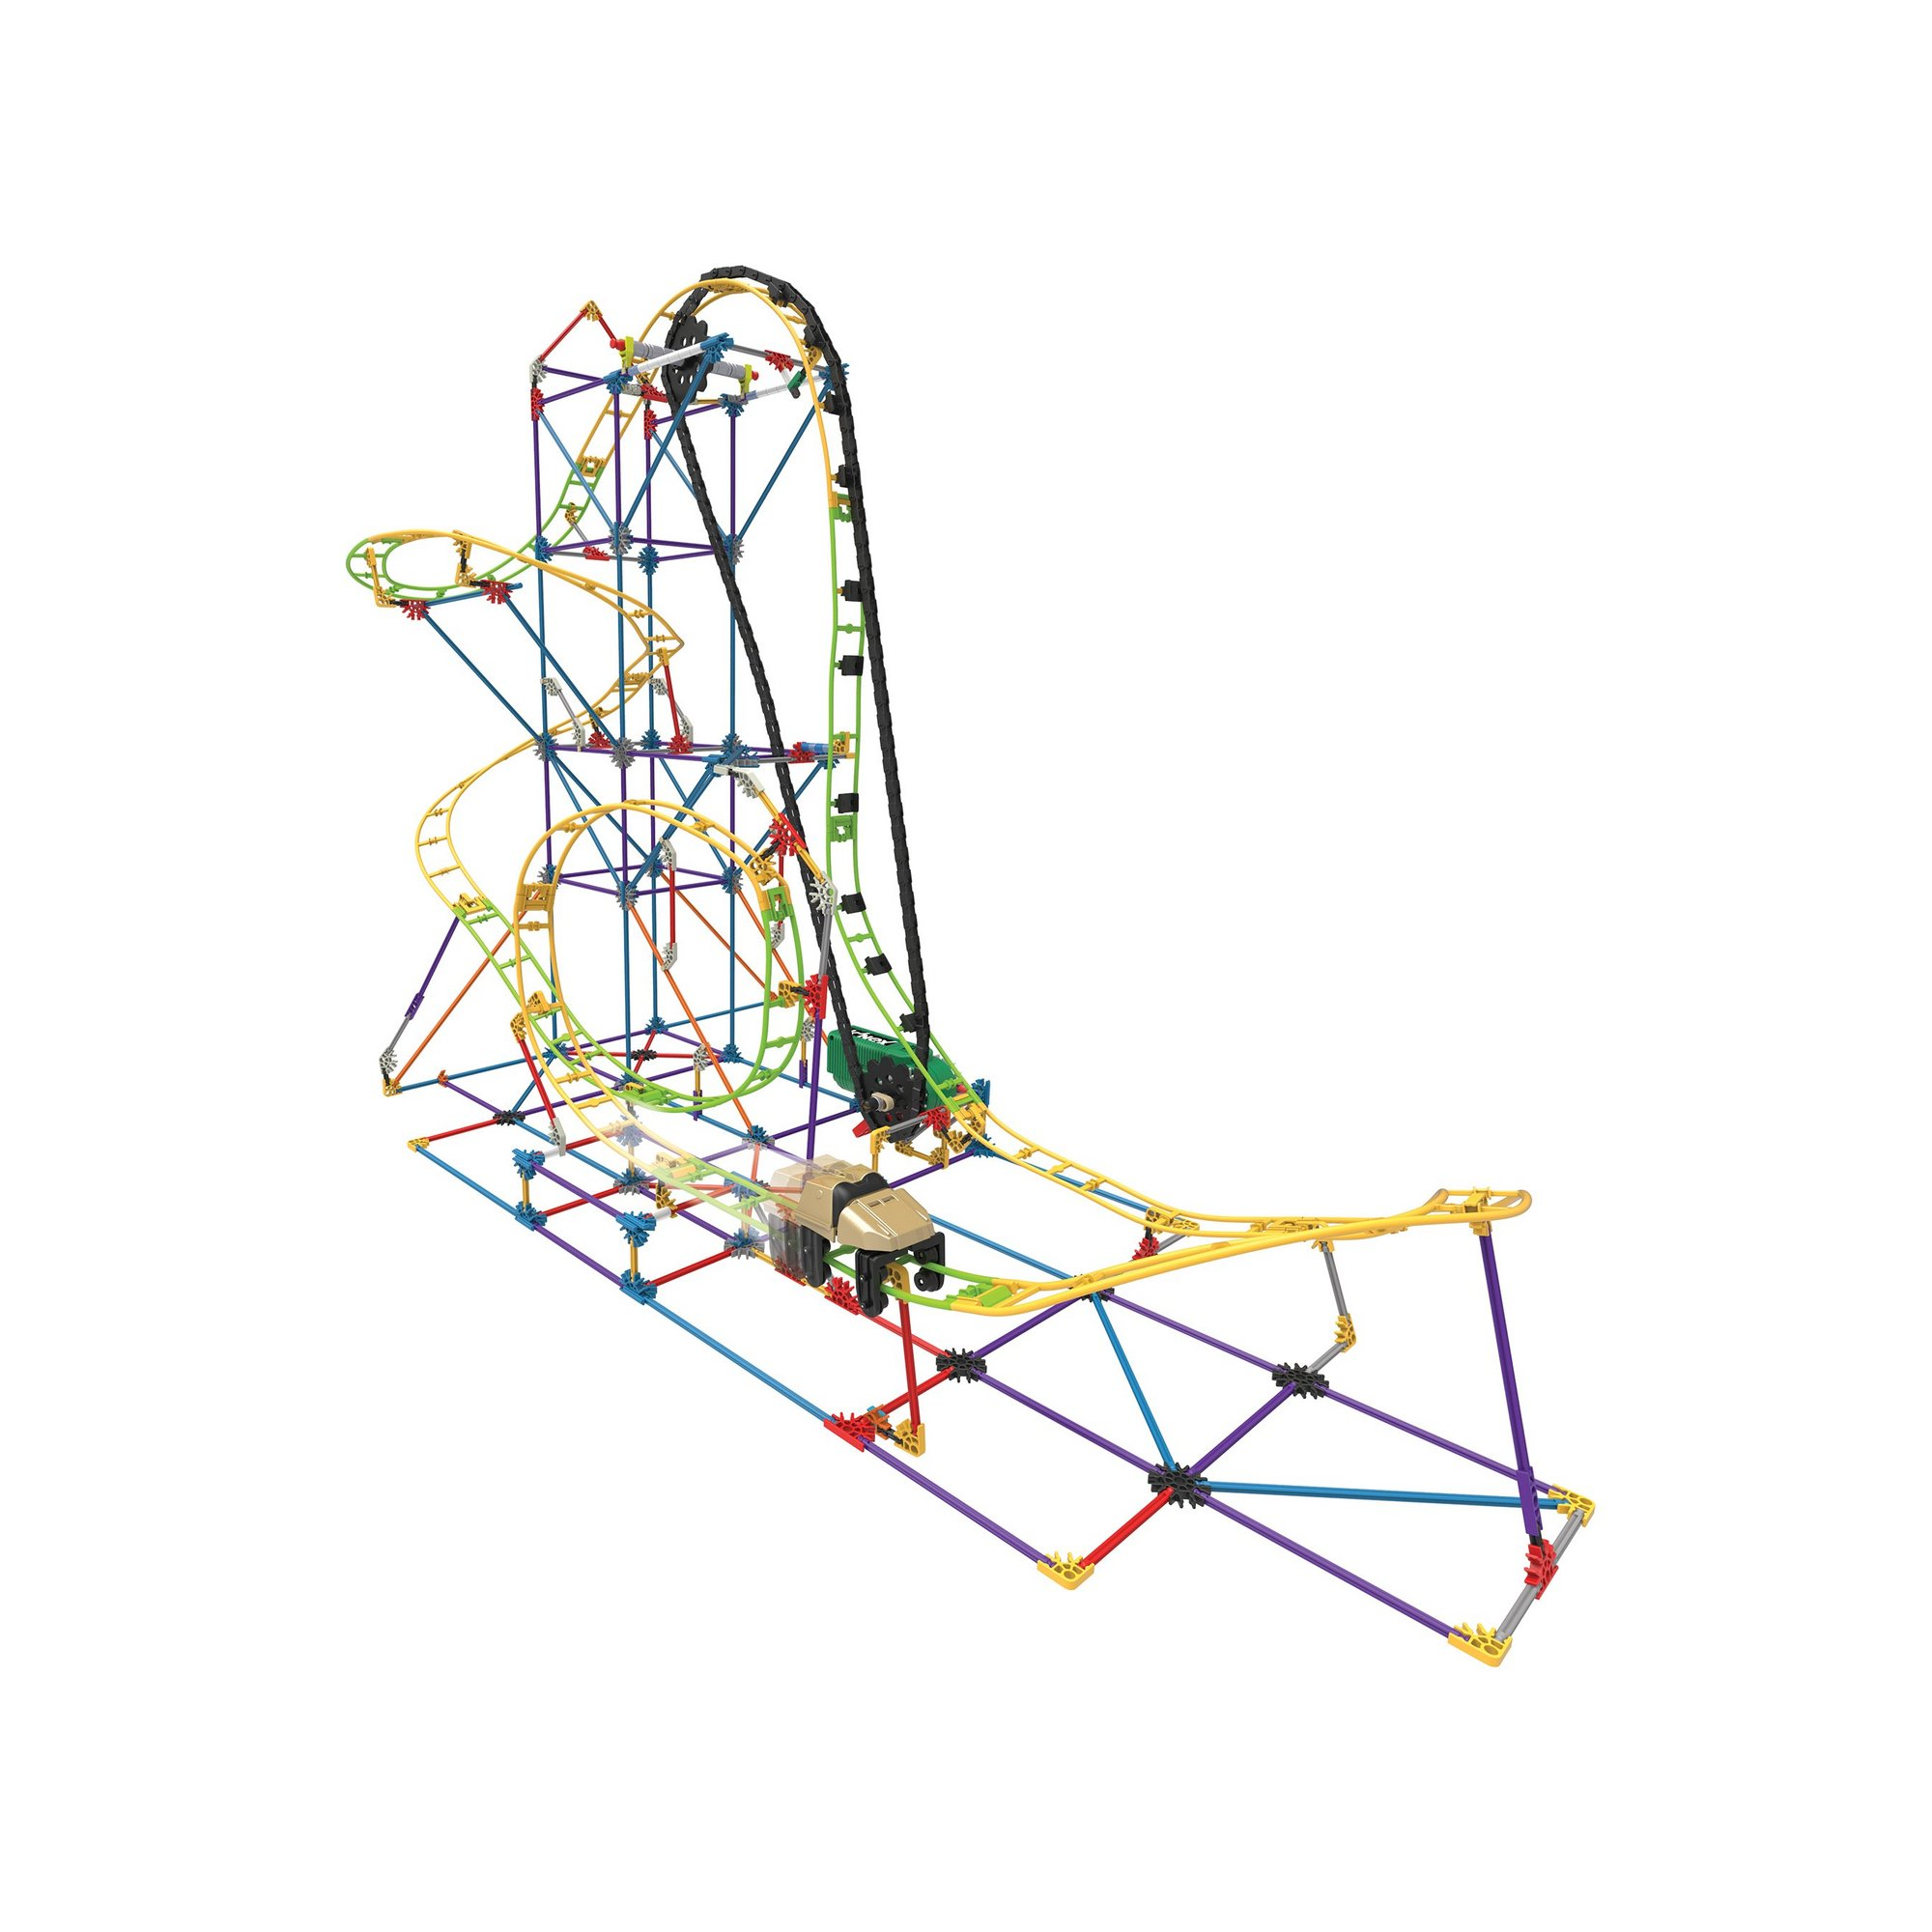 Image of Knex STEM Explorations Roller Coaster